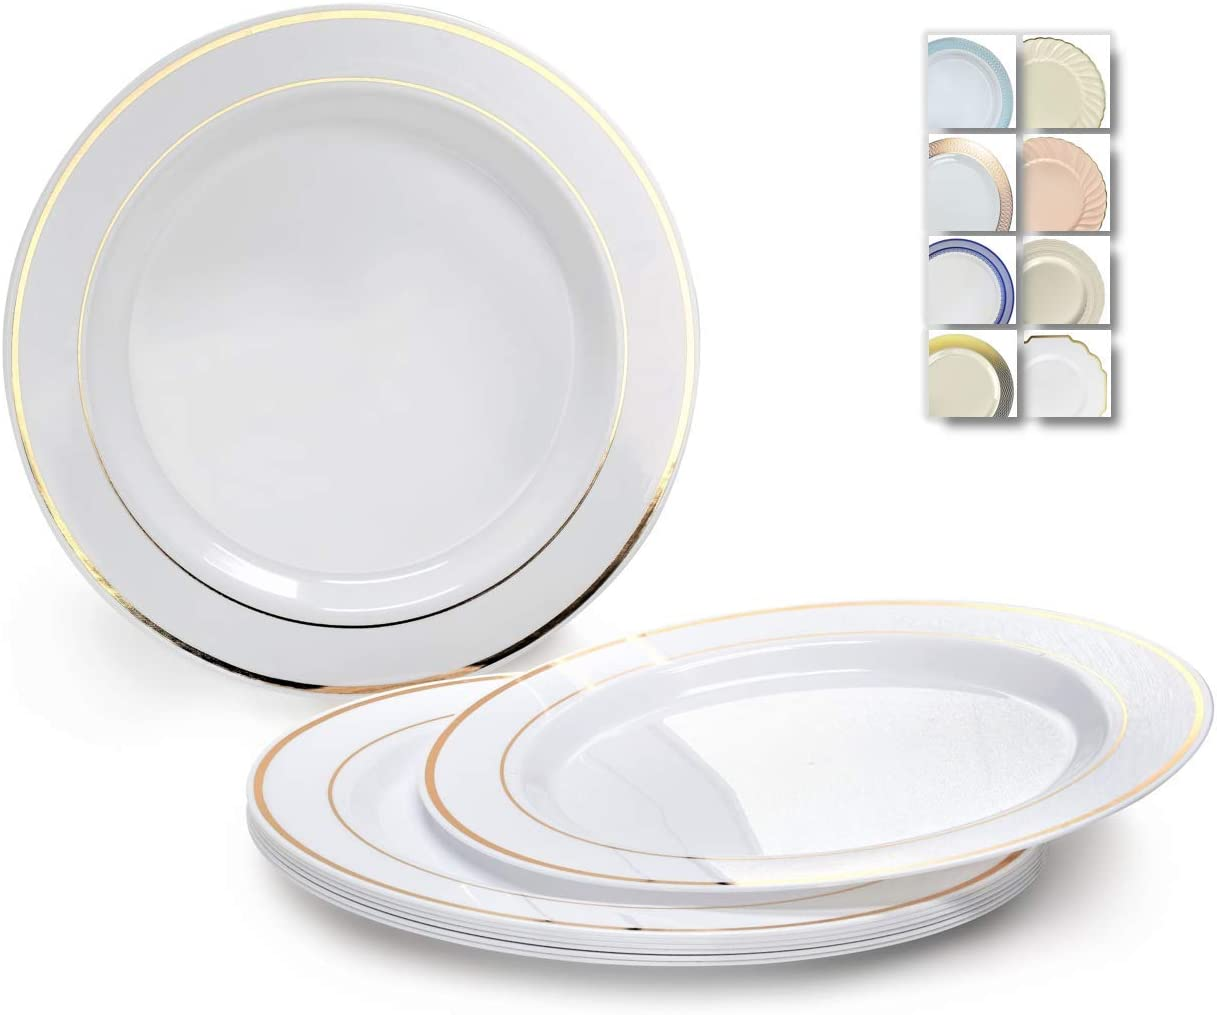 Parties Premium Elegant Heavy Duty Round Plastic Plates with Gold or Silver Trim for Weddings and Special Events